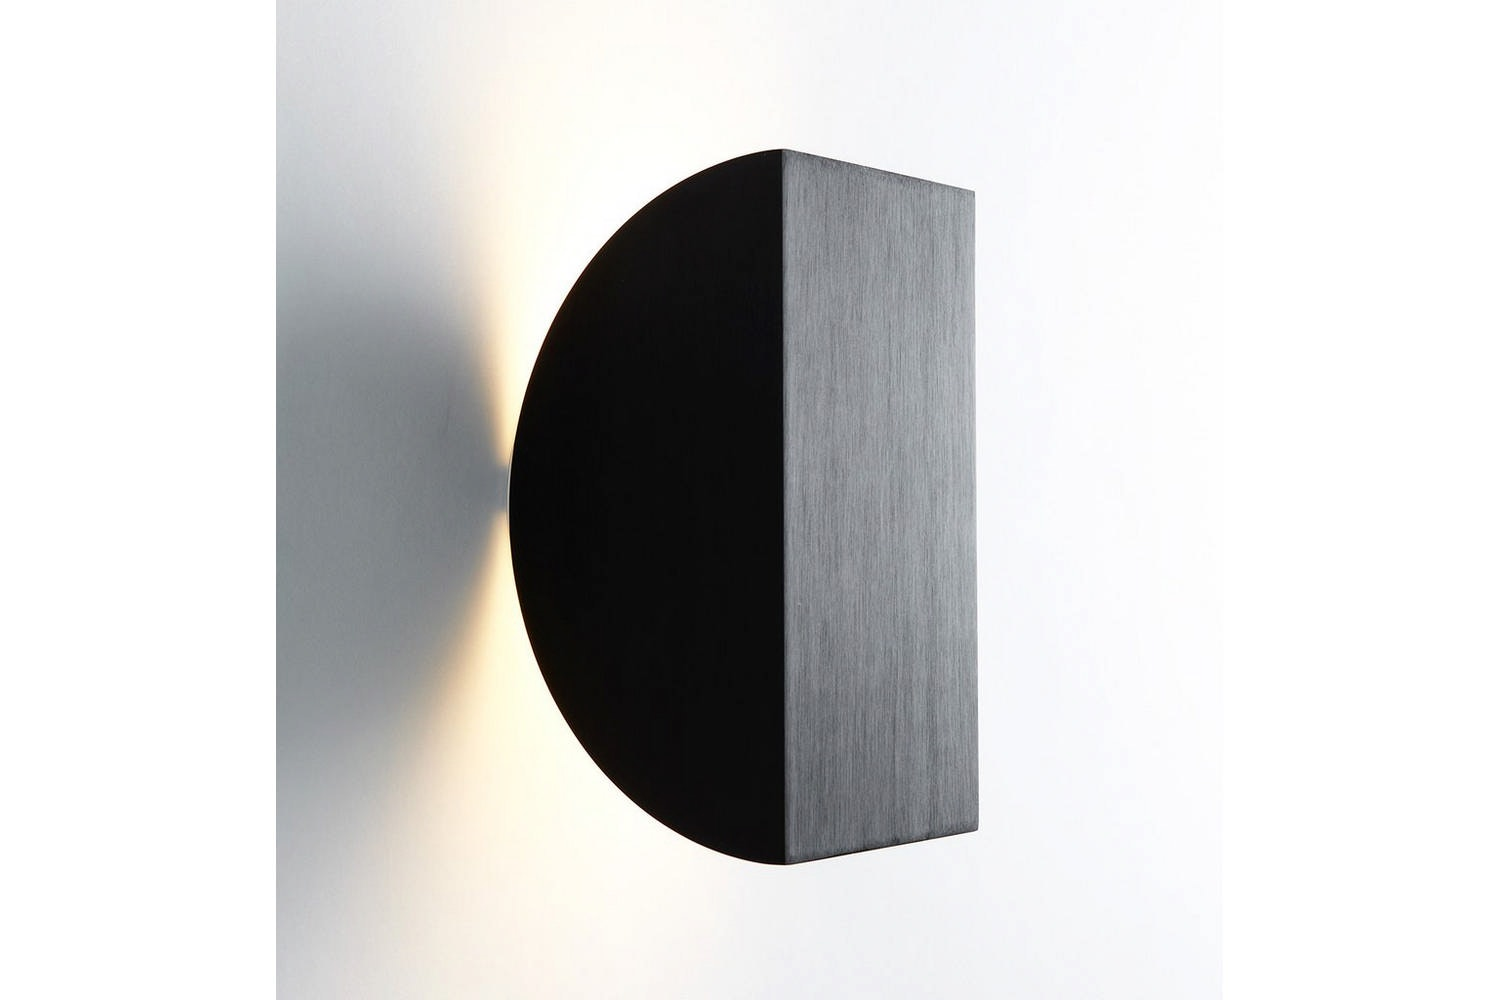 Cora Sconce by Karl Zahn for Roll & Hill